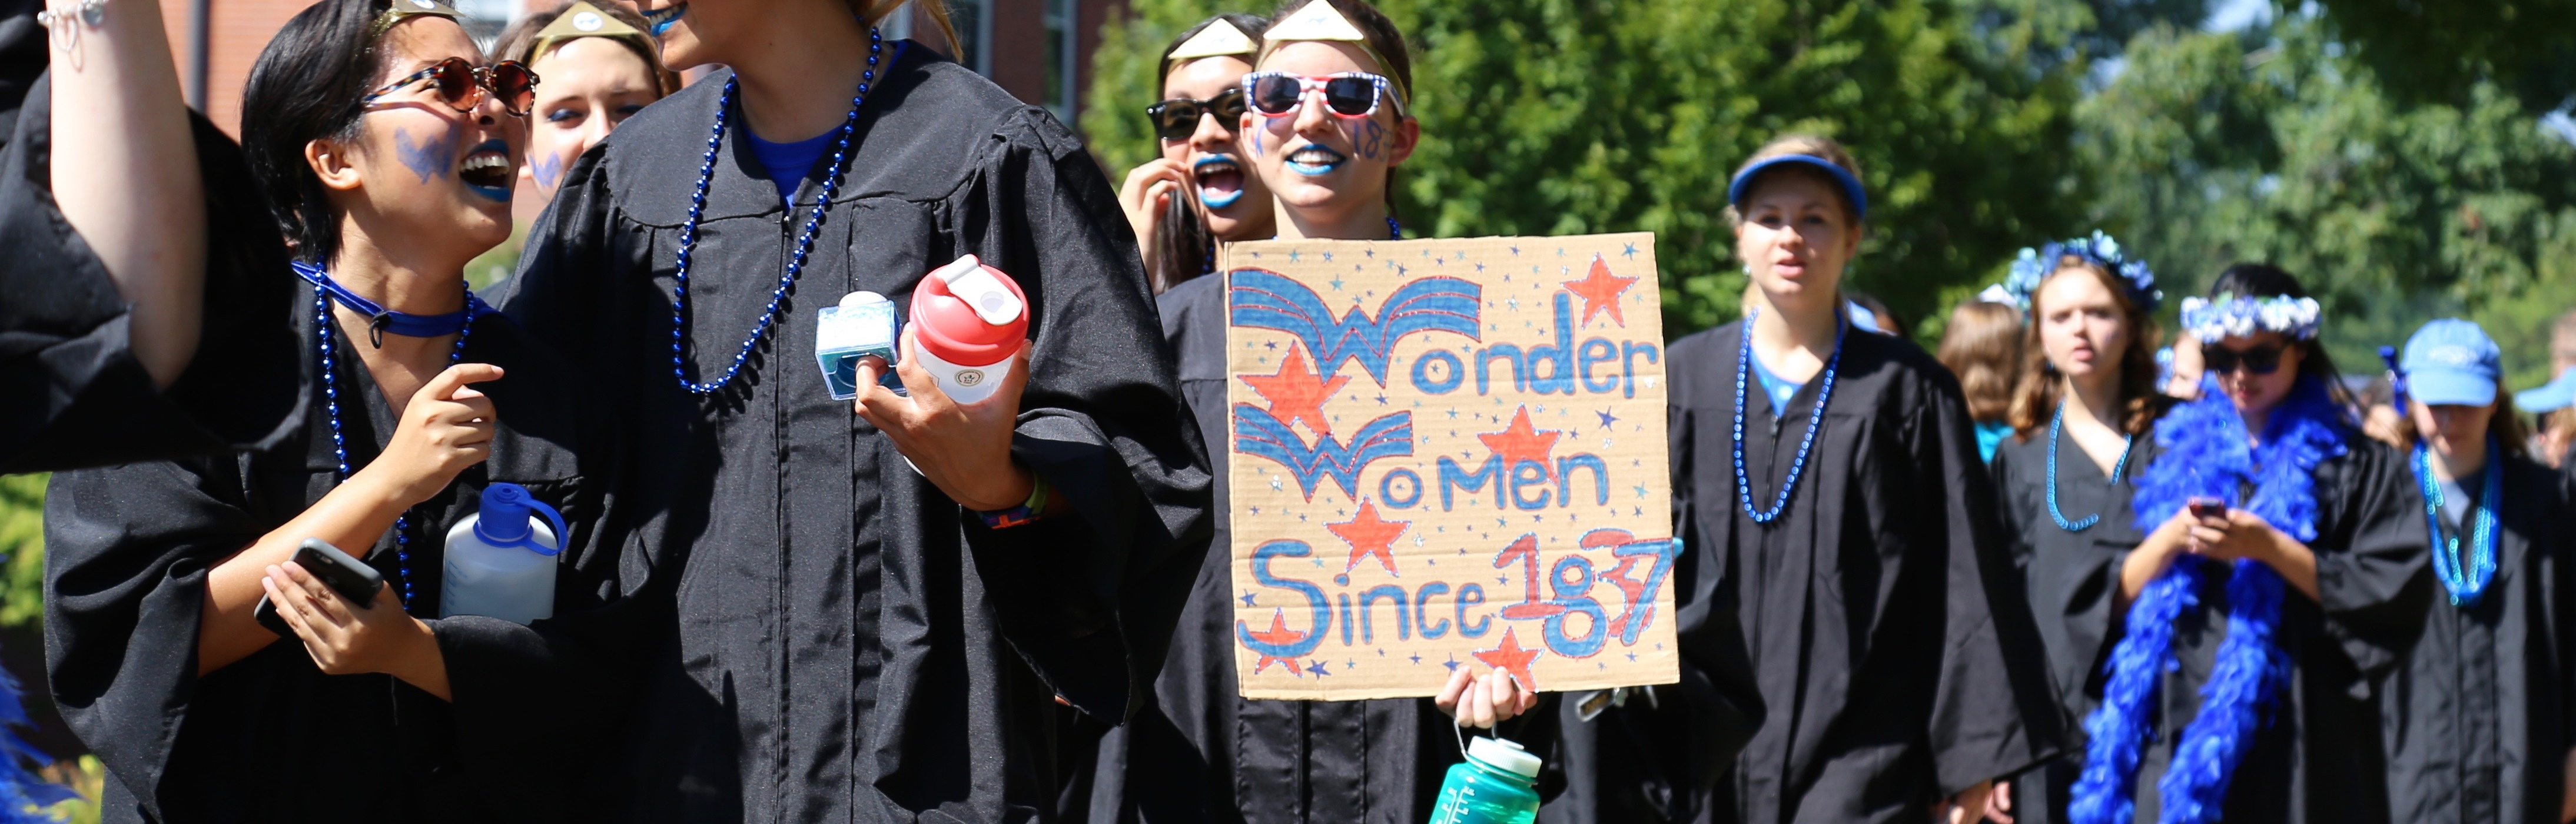 Students at Convocation.